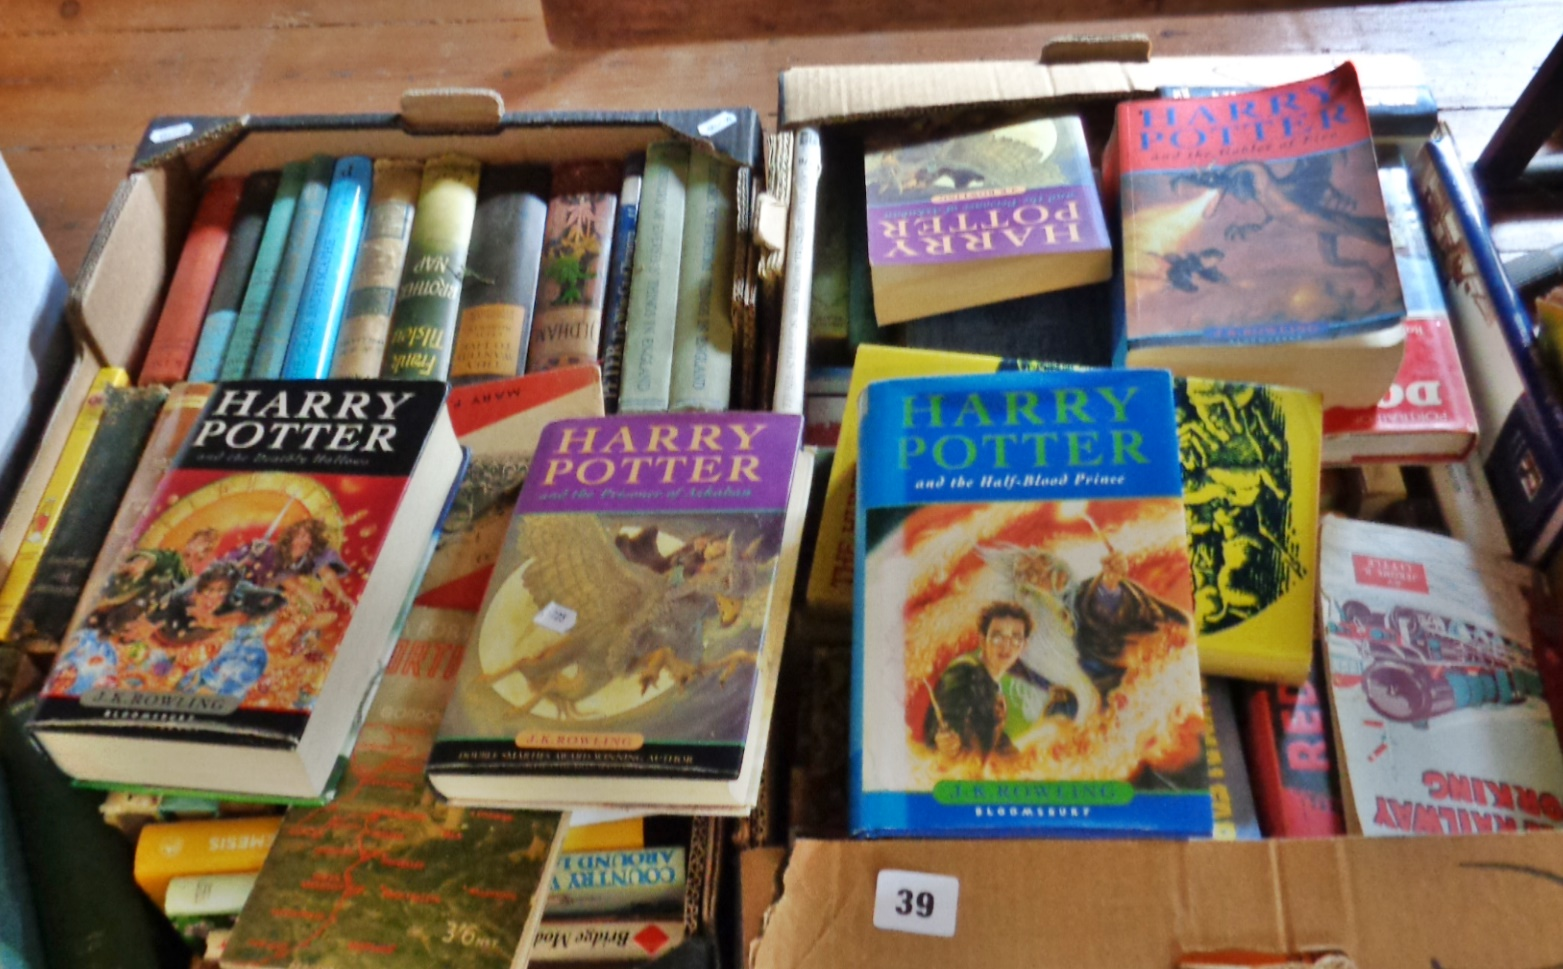 Lot 39 - Two boxes of paperback and hardback books, inc. Harry Potter, 1st Editions